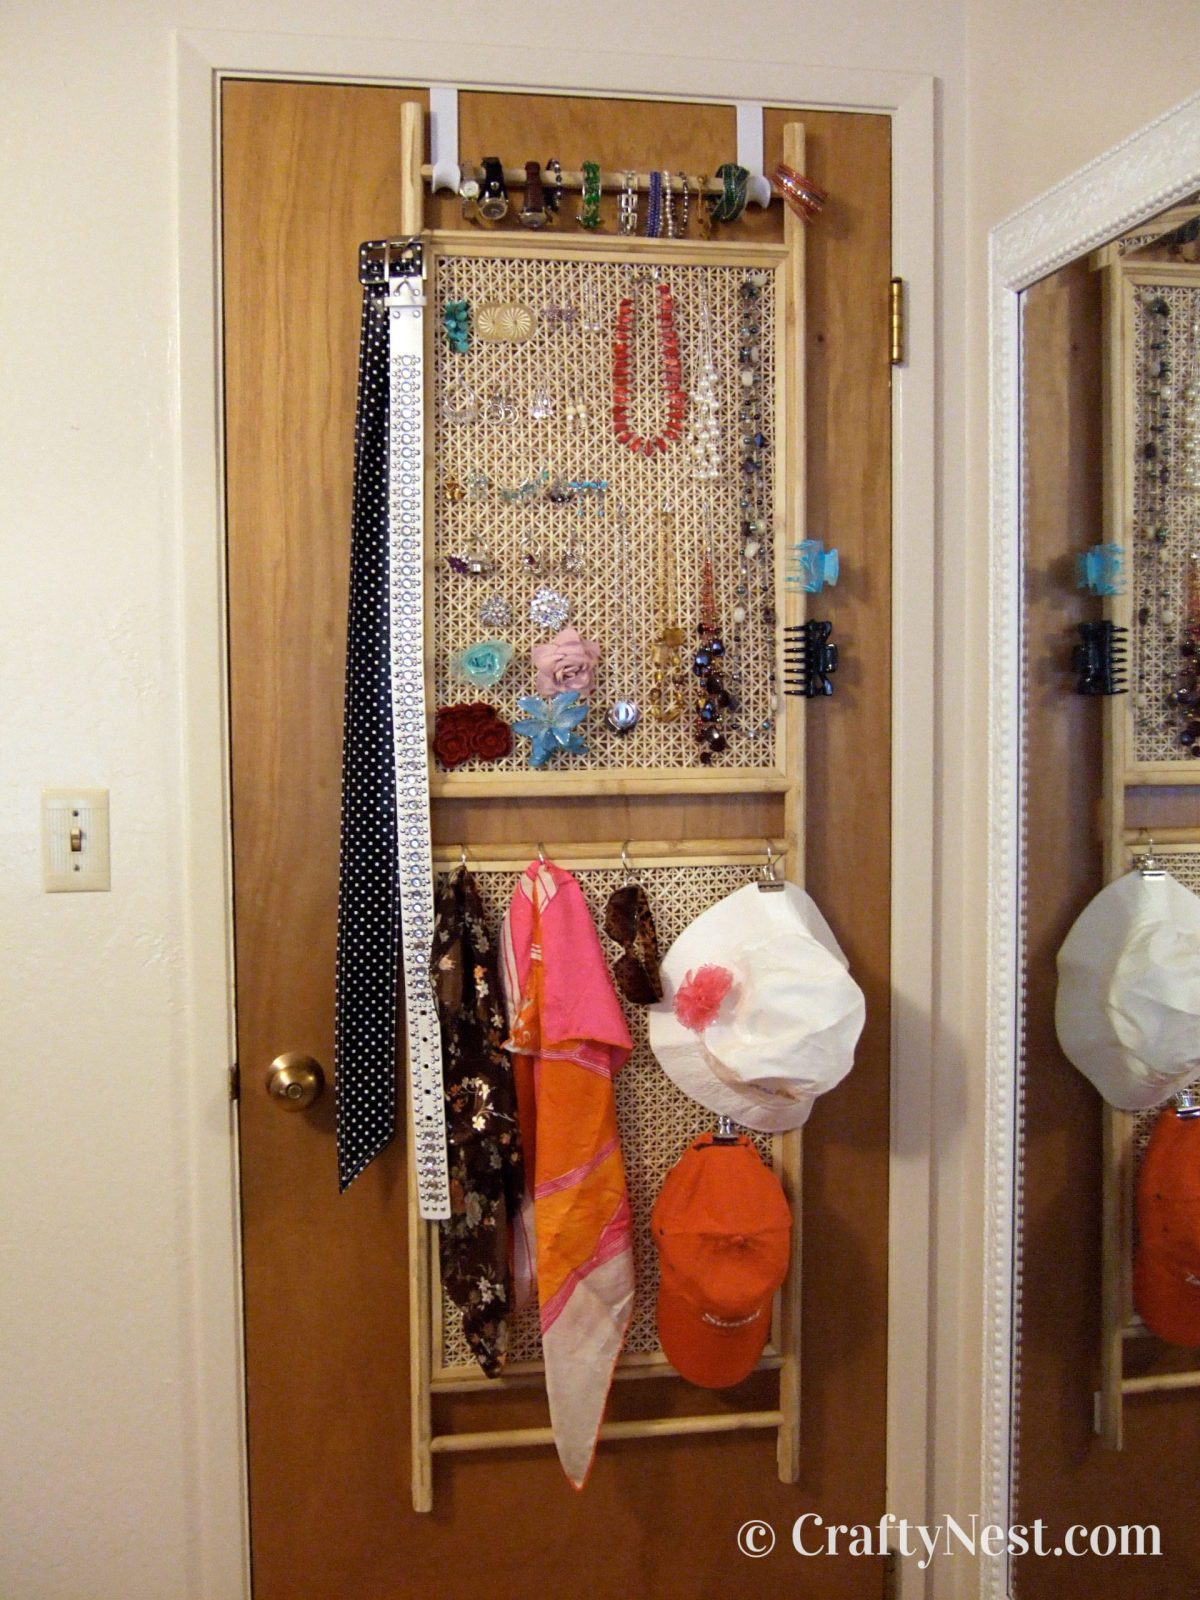 Fashion accessories organizer hanging on the back of a door, photo